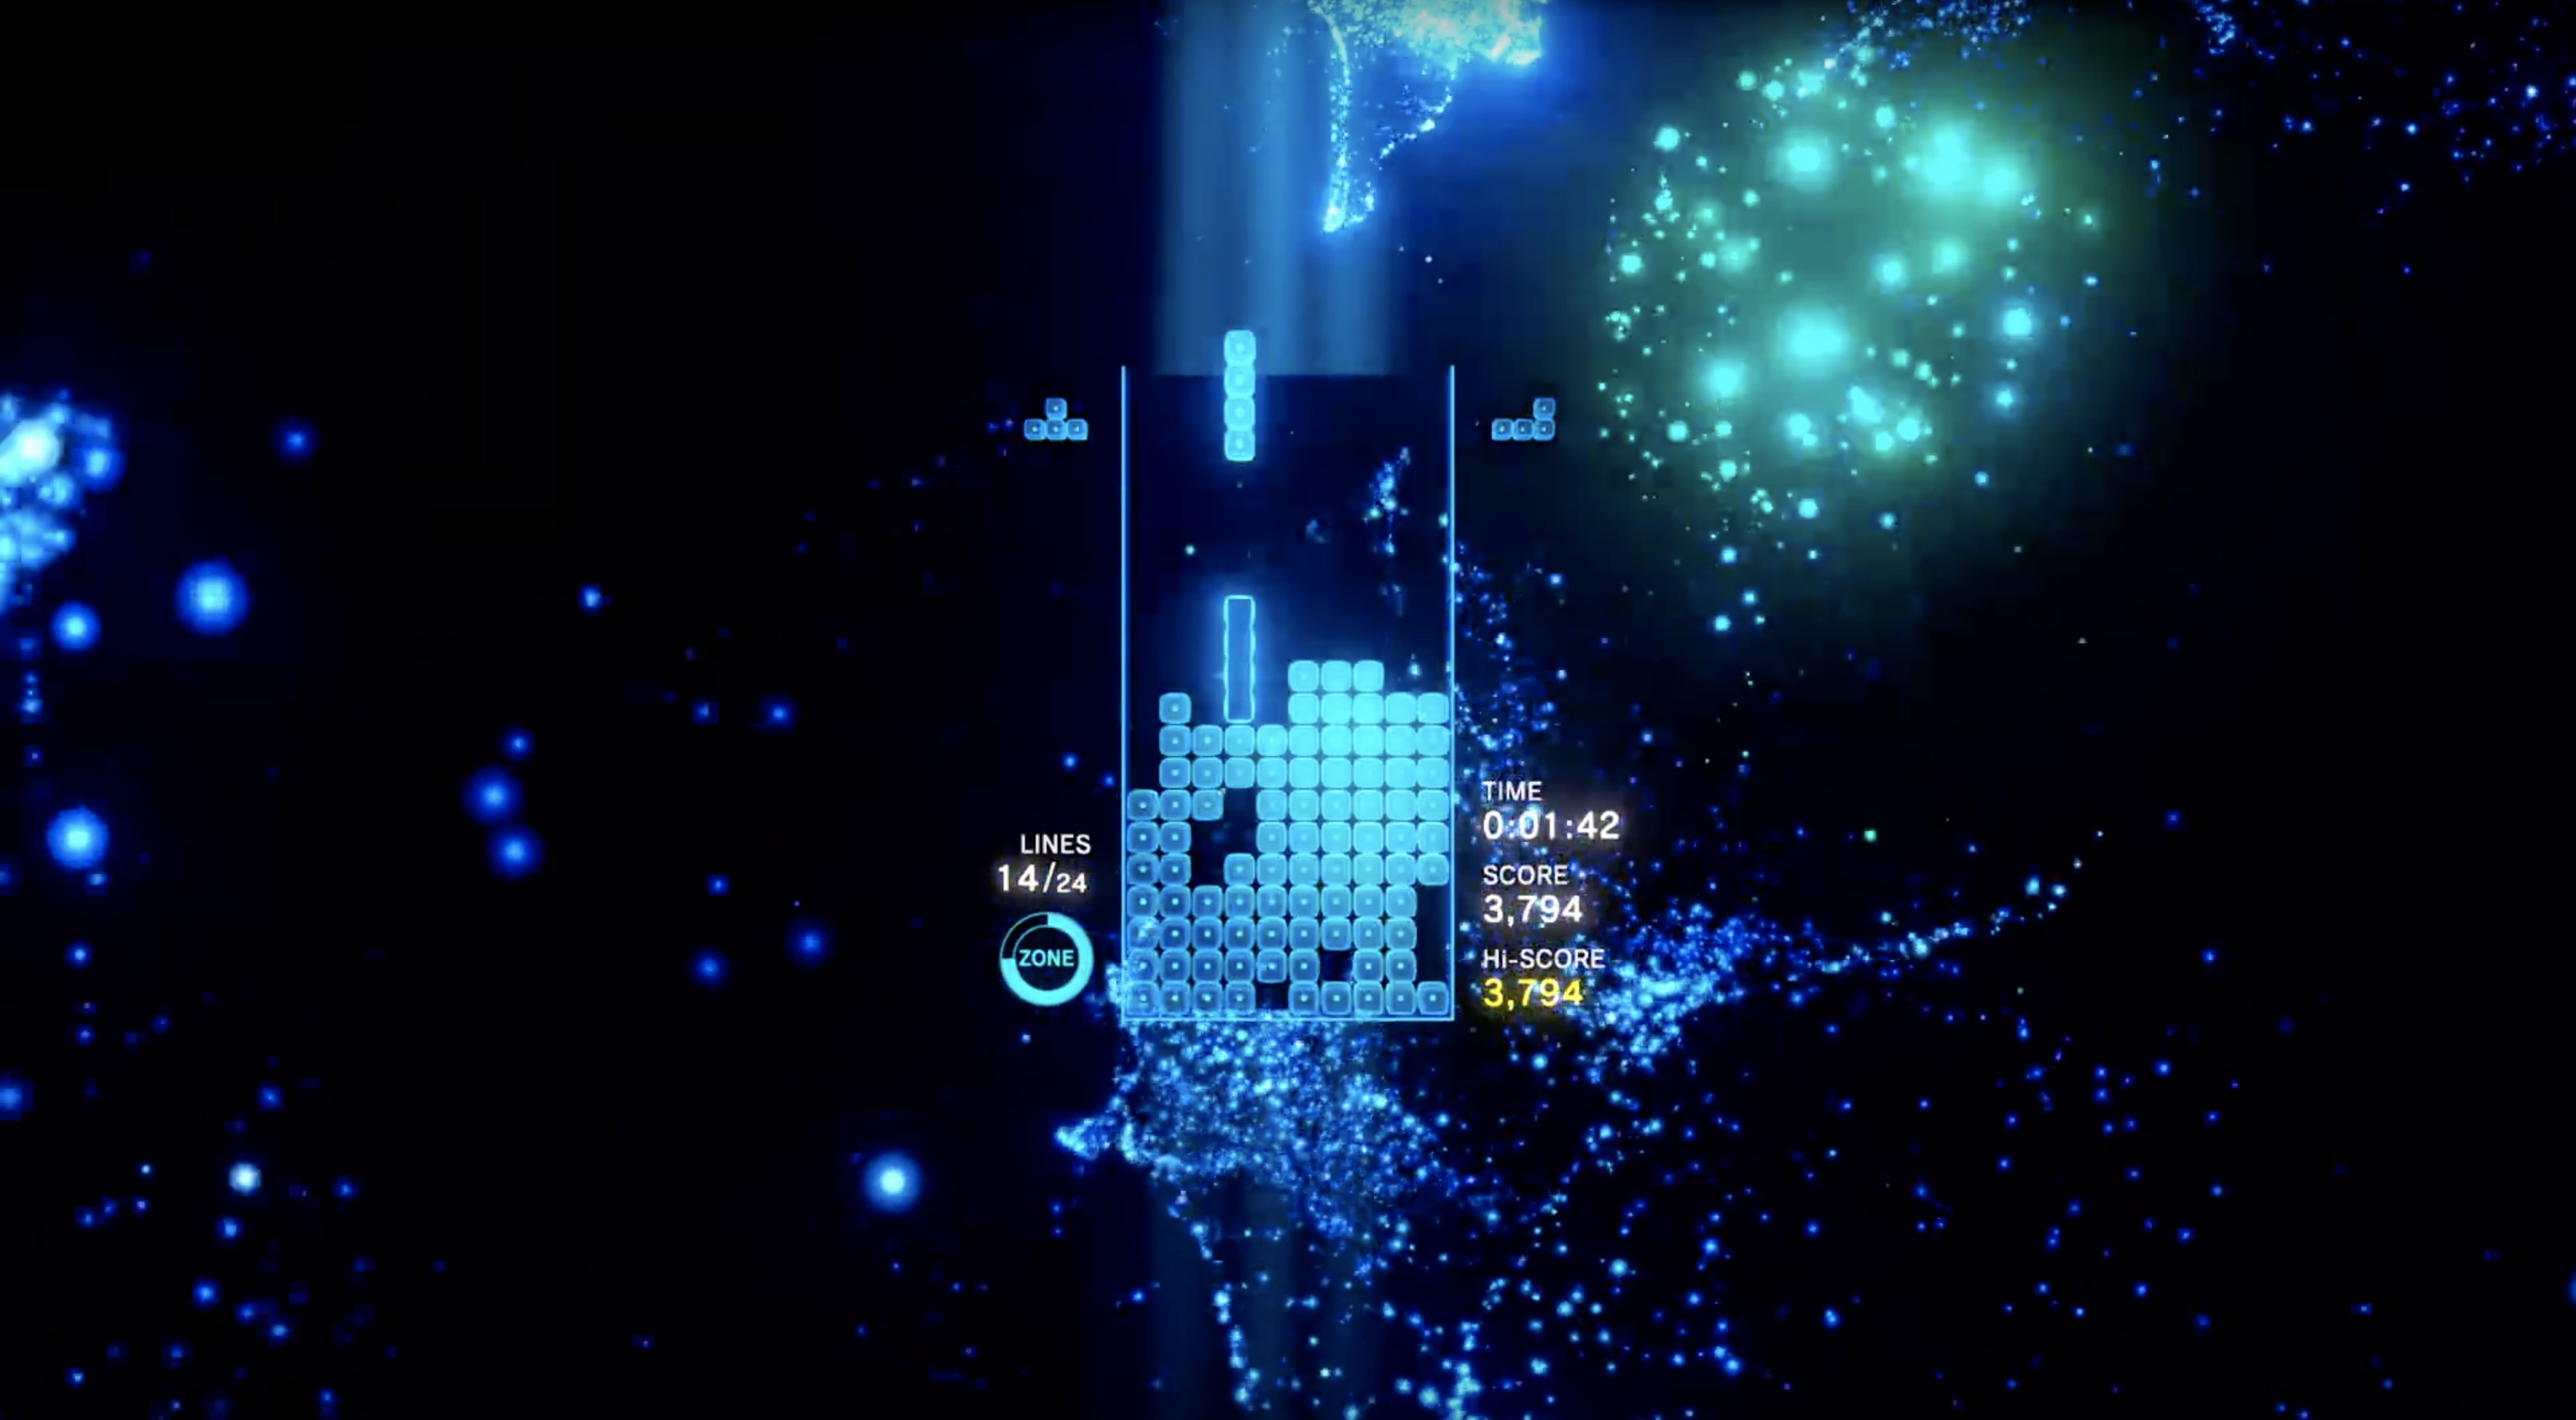 Tetris Effect drops like a ton of bricks on PS4 November 9 - Swiss